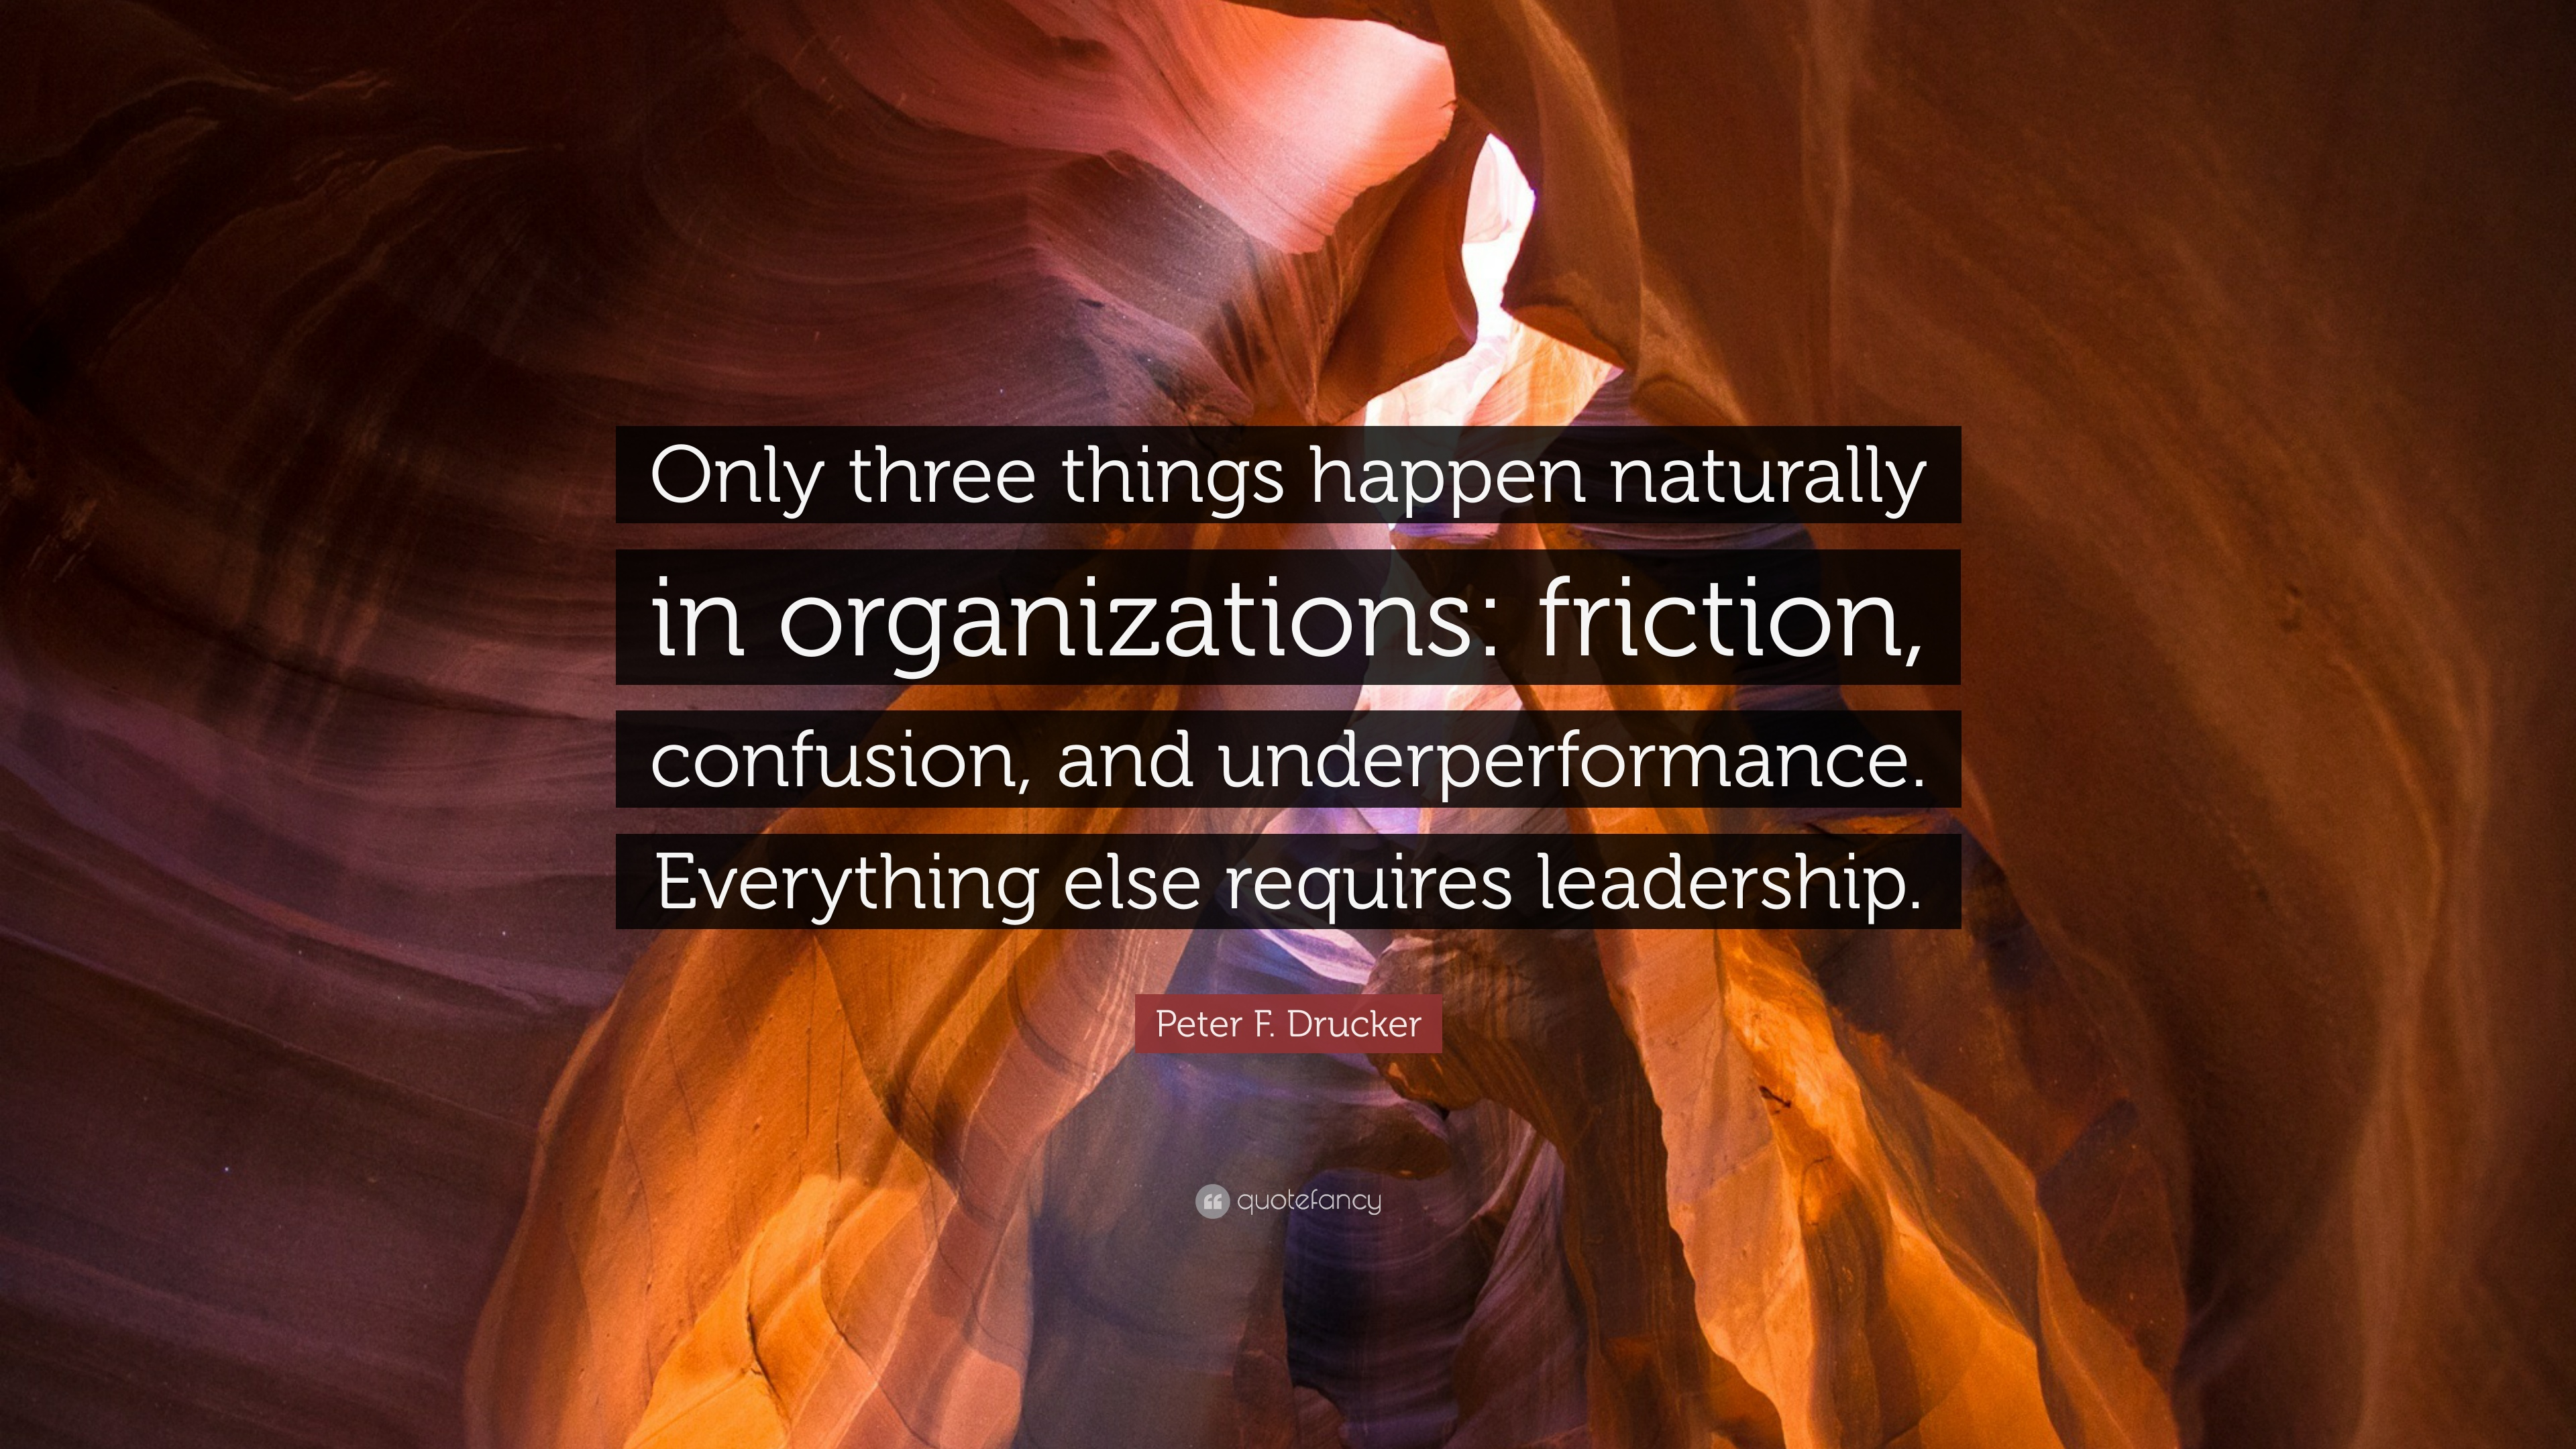 419661-Peter-F-Drucker-Quote-Only-three-things-happen-naturally-in